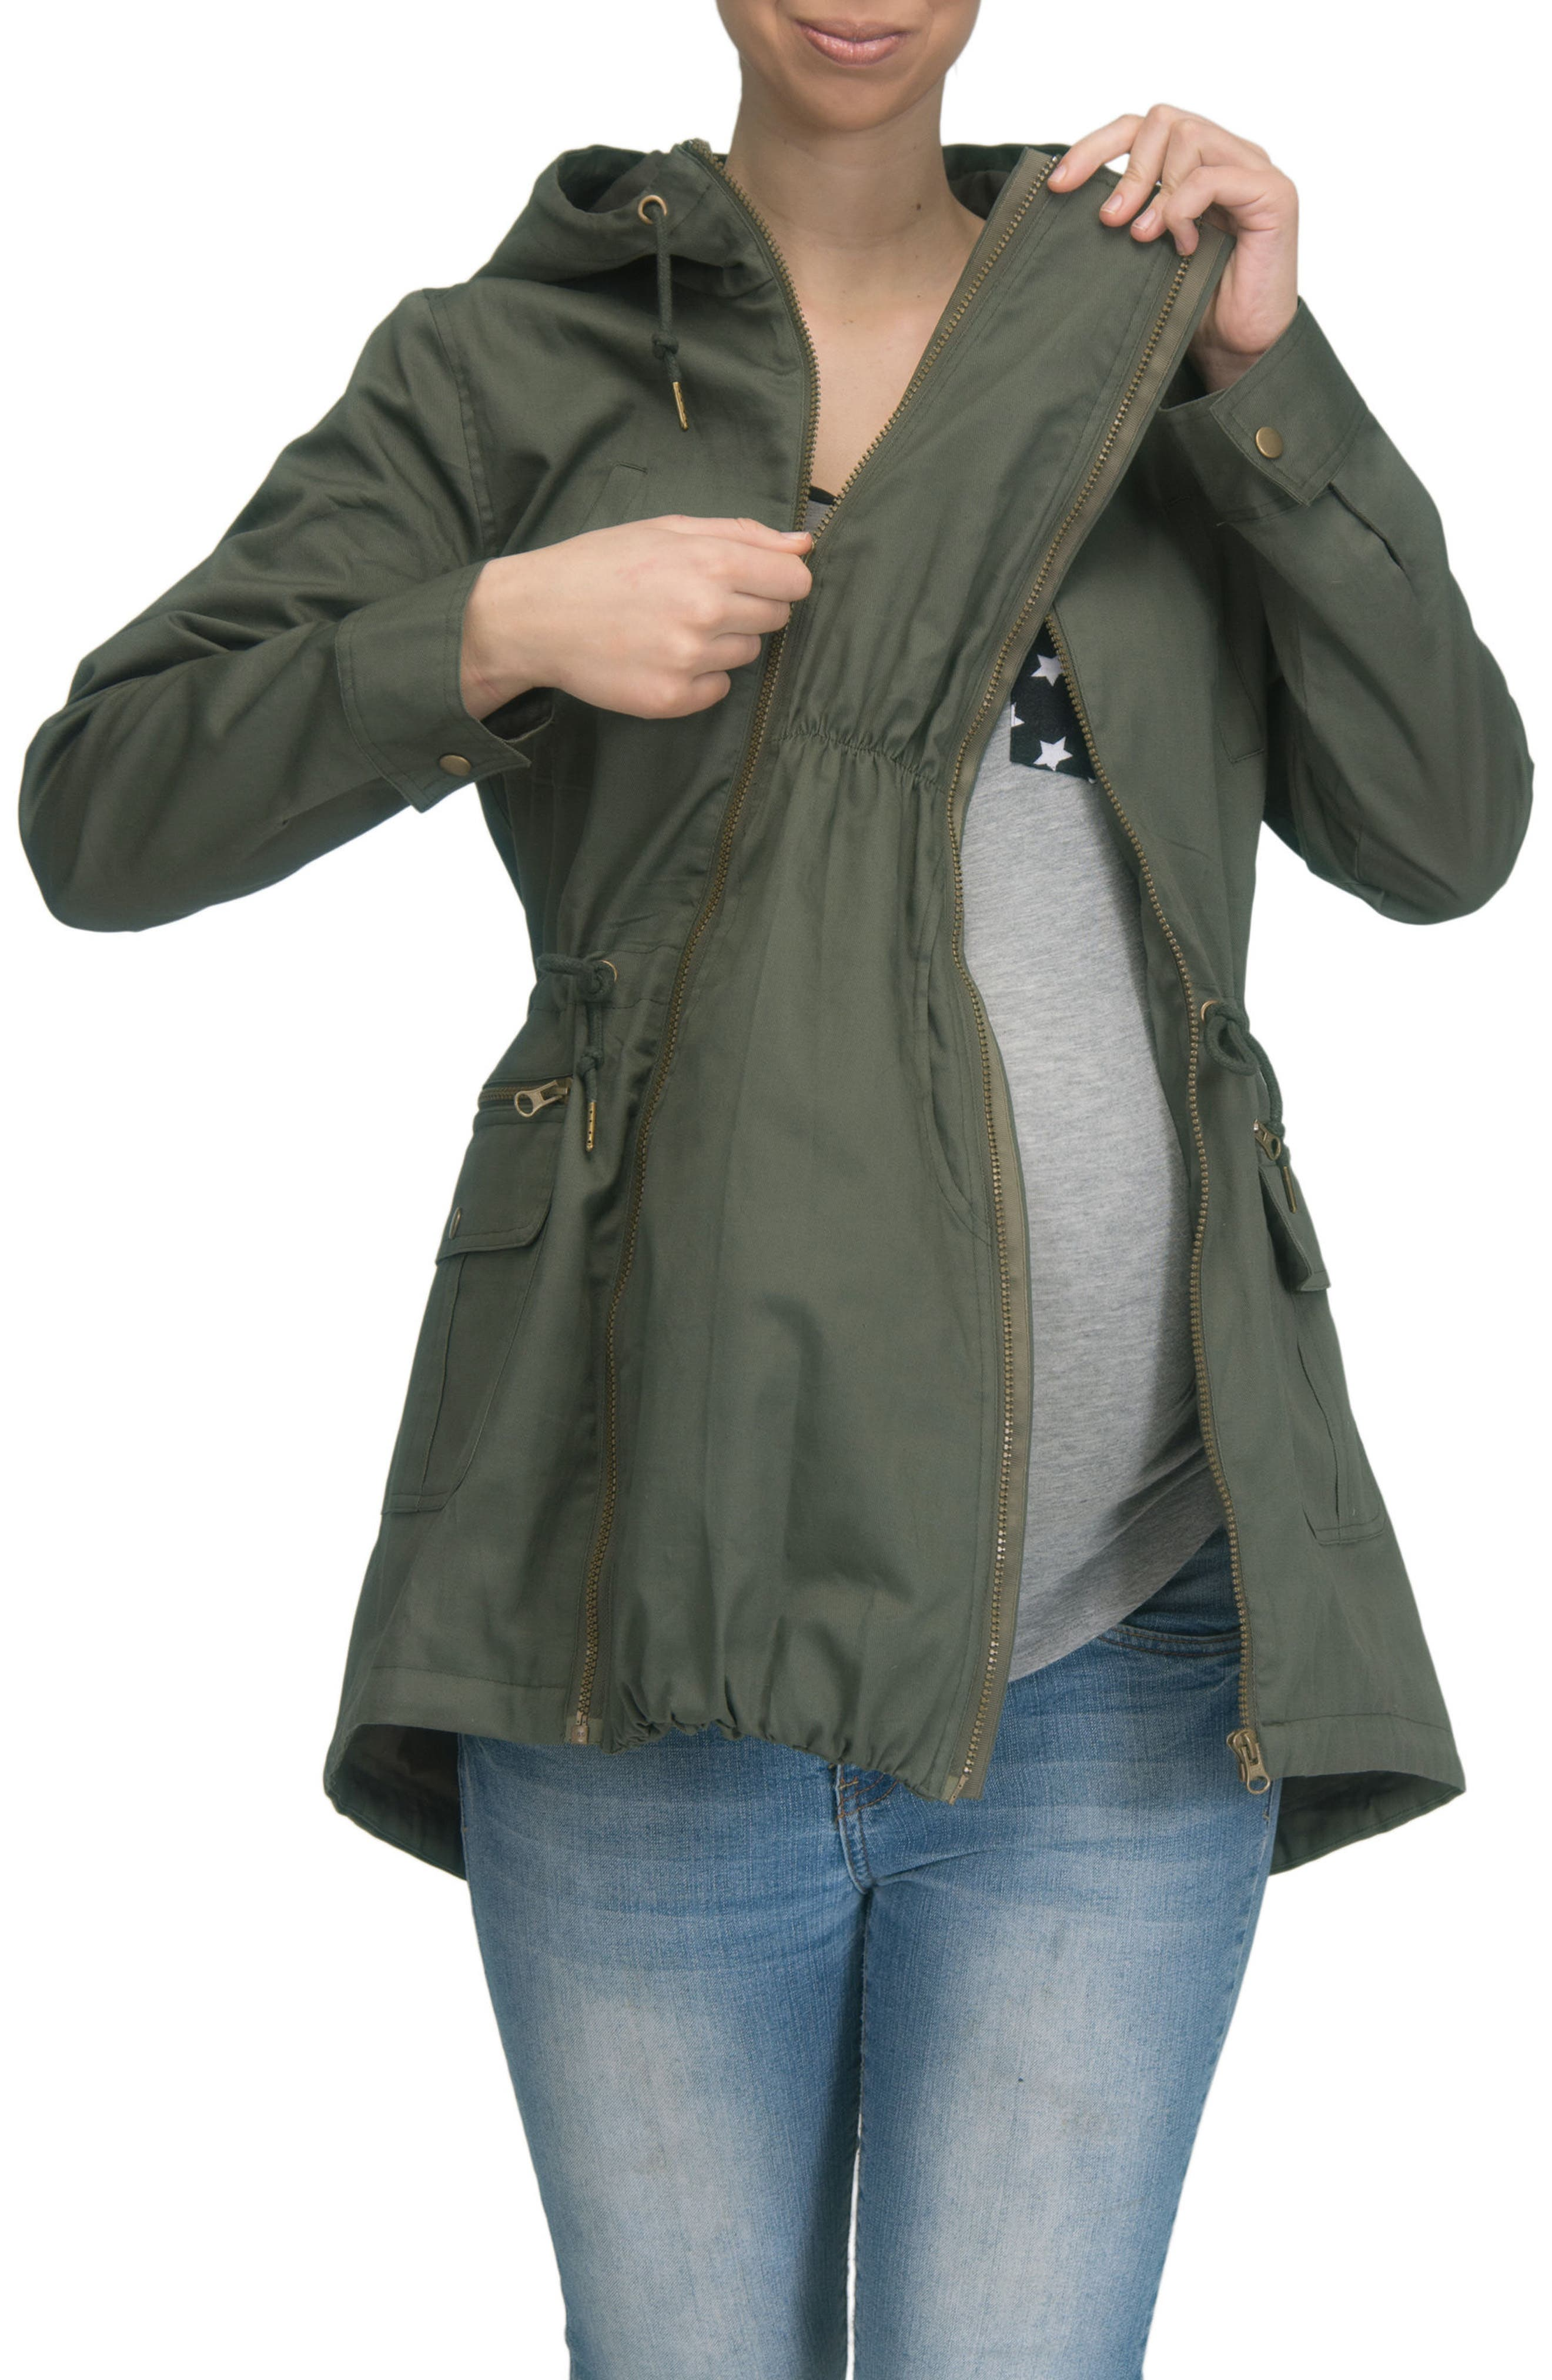 Convertible Military 3-in-1 Maternity/Nursing Jacket,                             Alternate thumbnail 11, color,                             KHAKI GREEN